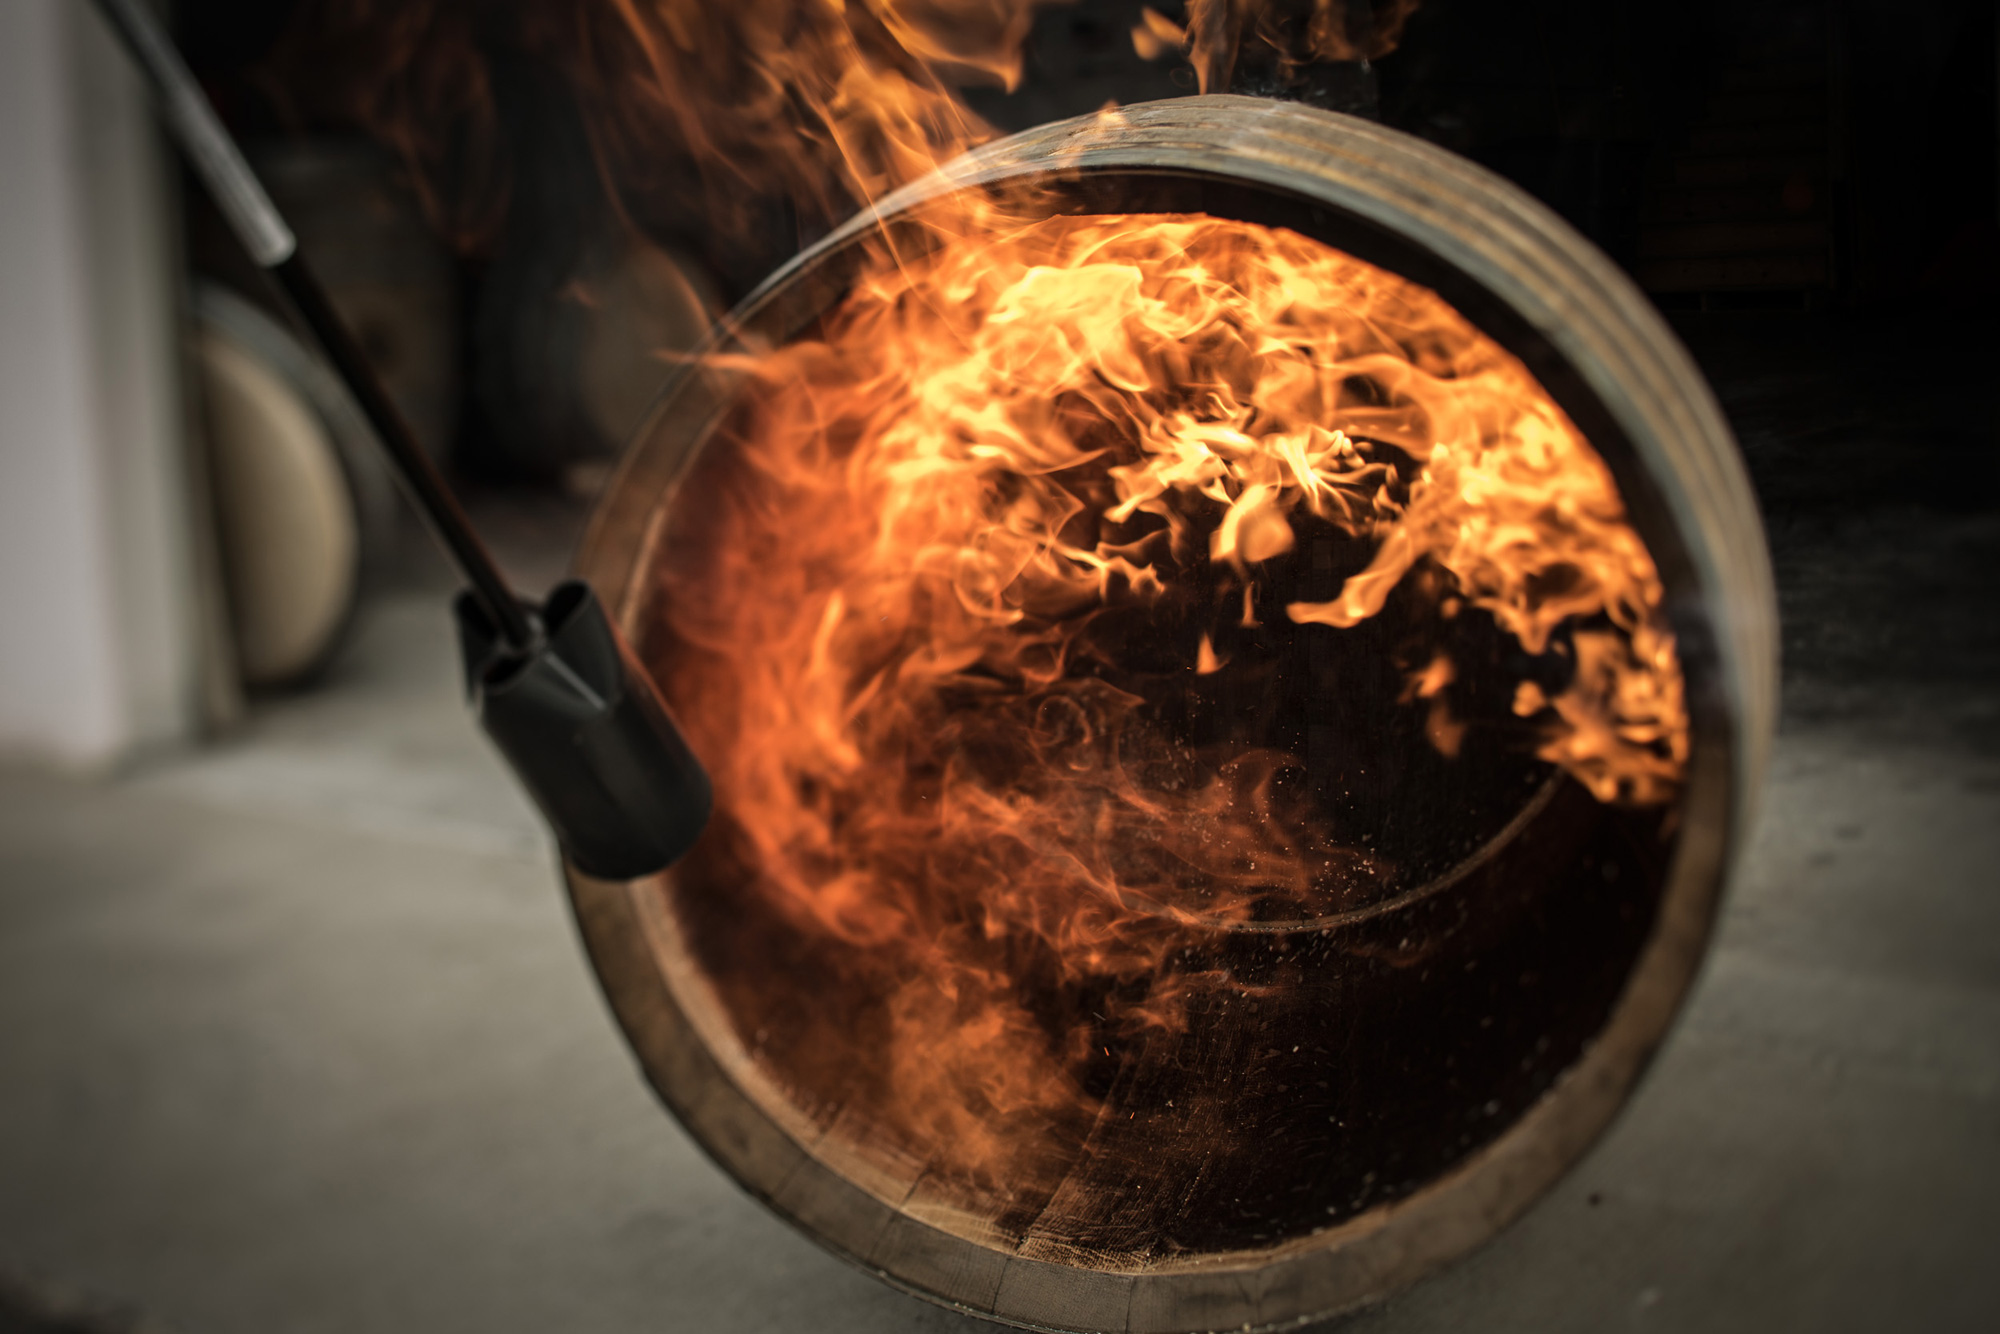 Beehive Distilling Small Batch Craft Gin Salt Lake City Utah 9